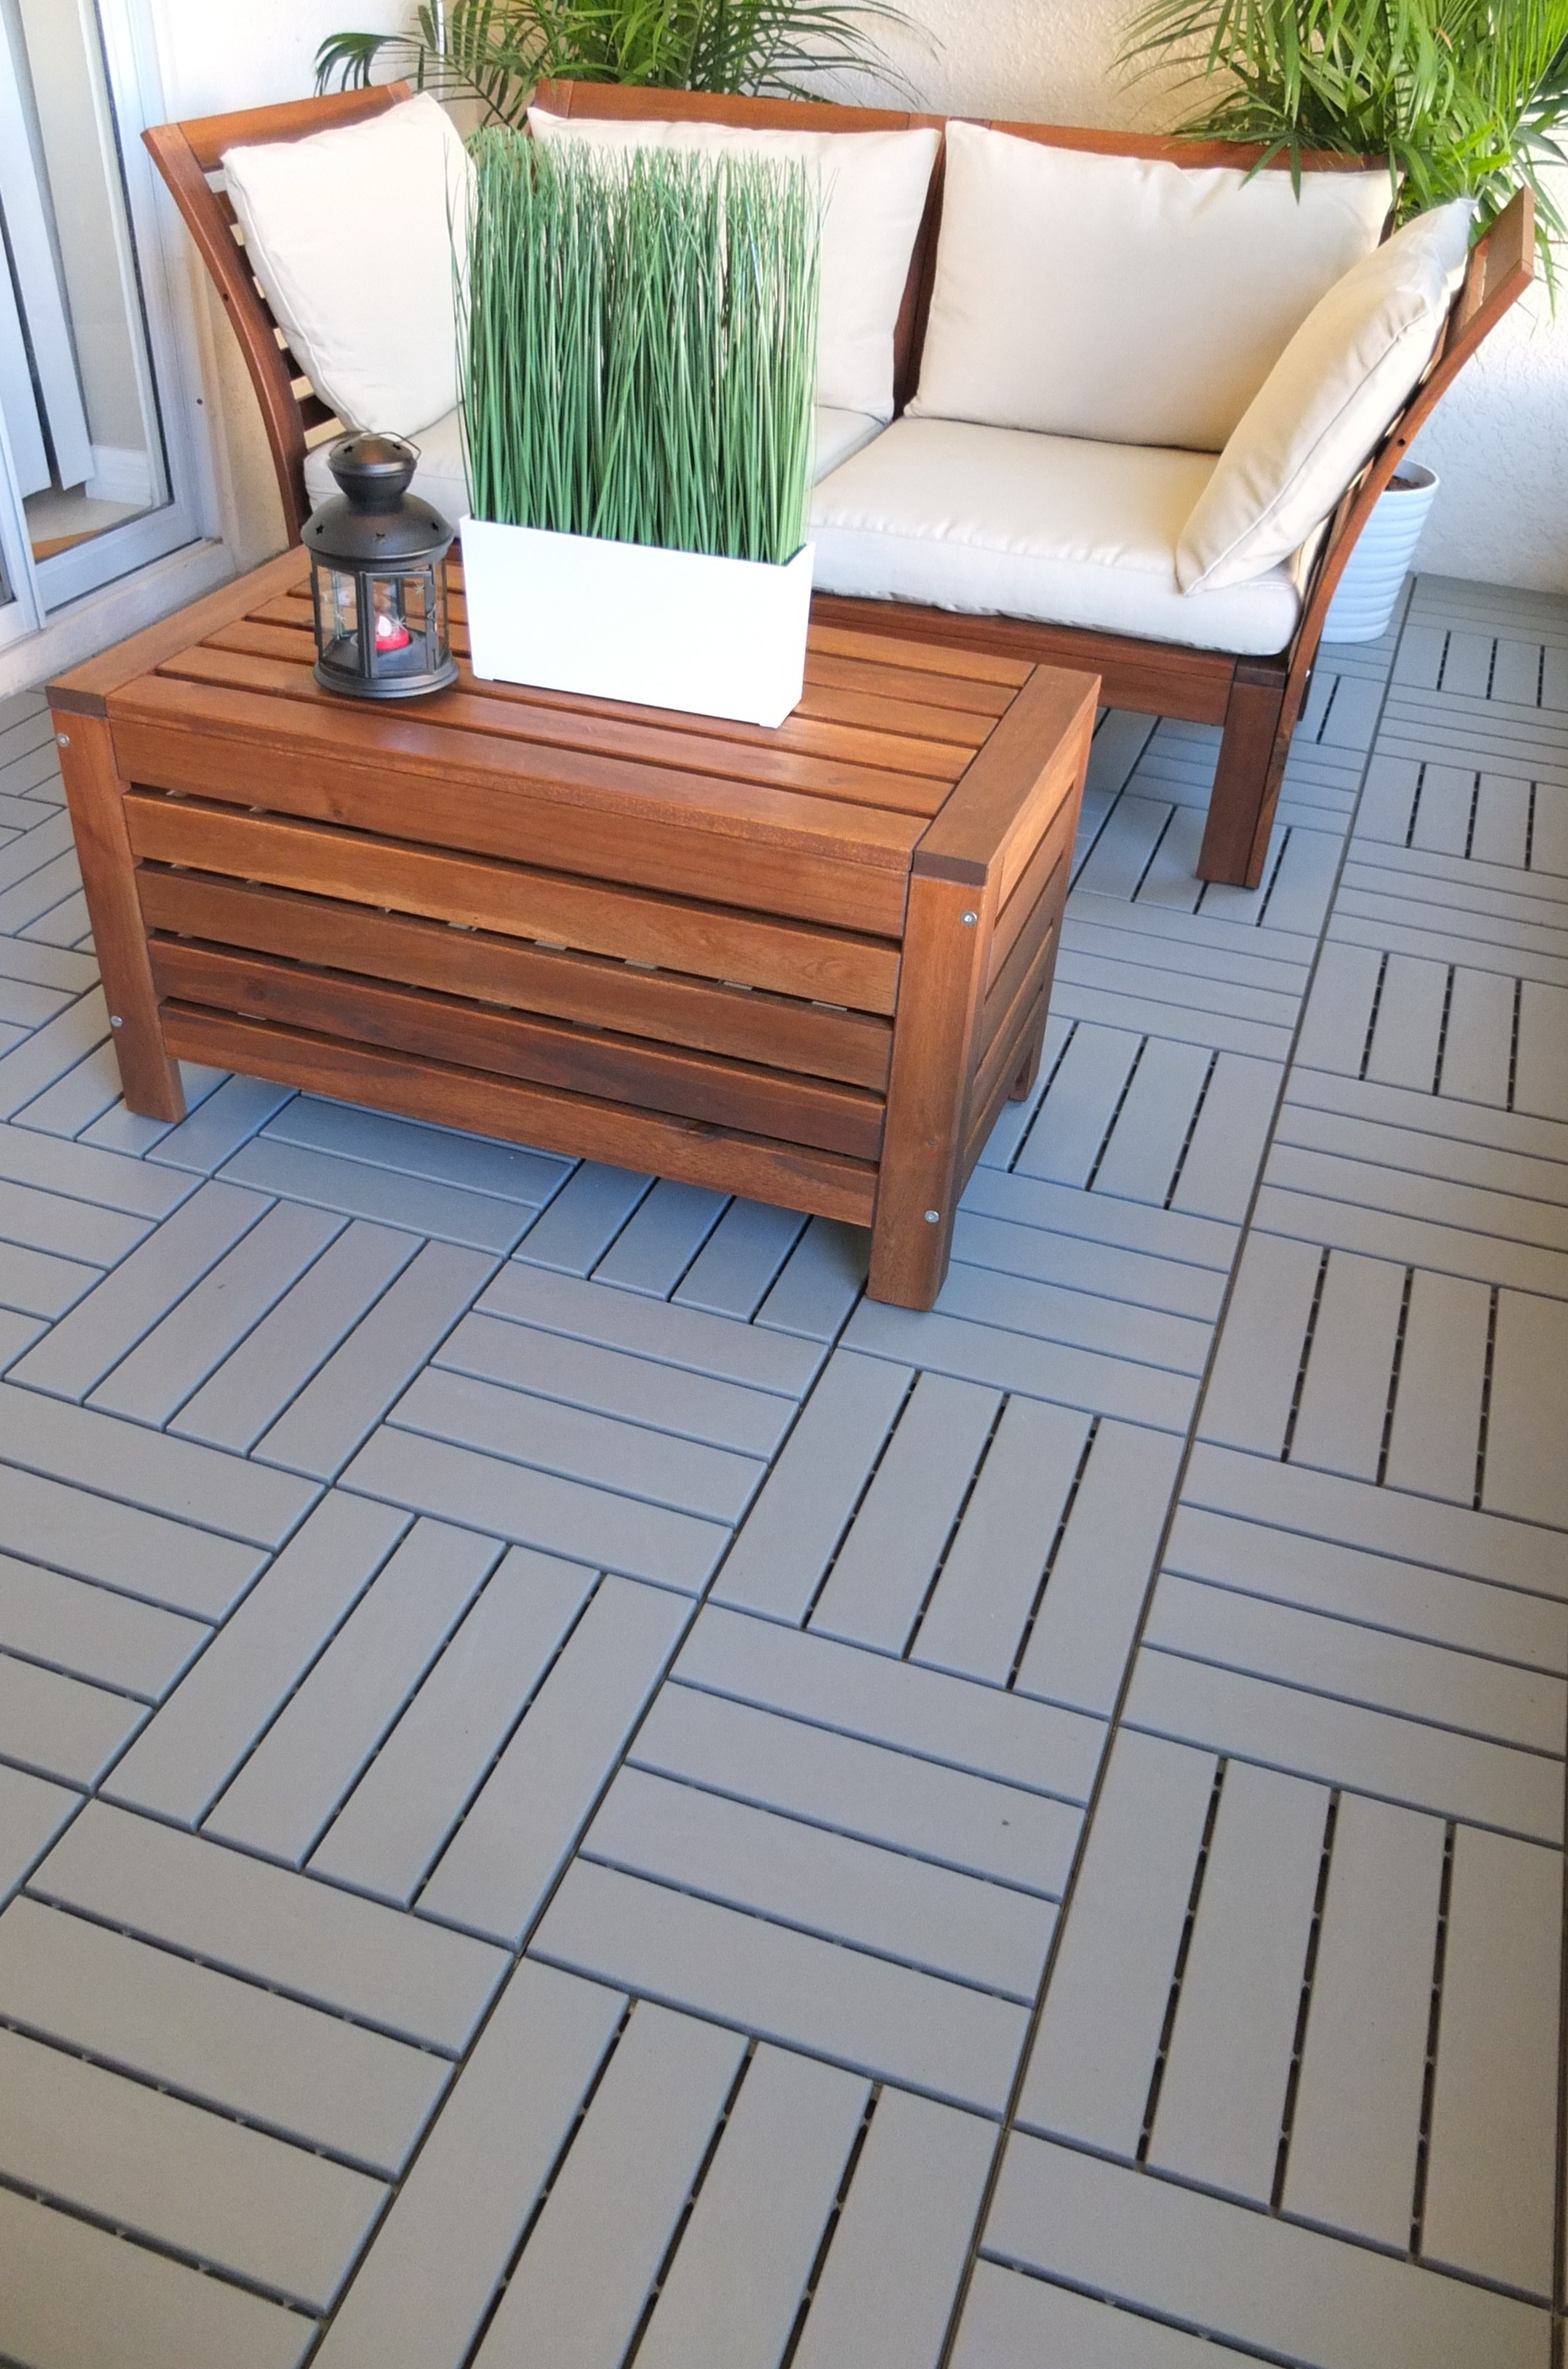 Elegant Transform A Patio, Balcony, Or Other Outdoor Space With Ease: RUNNEN  Decking Is